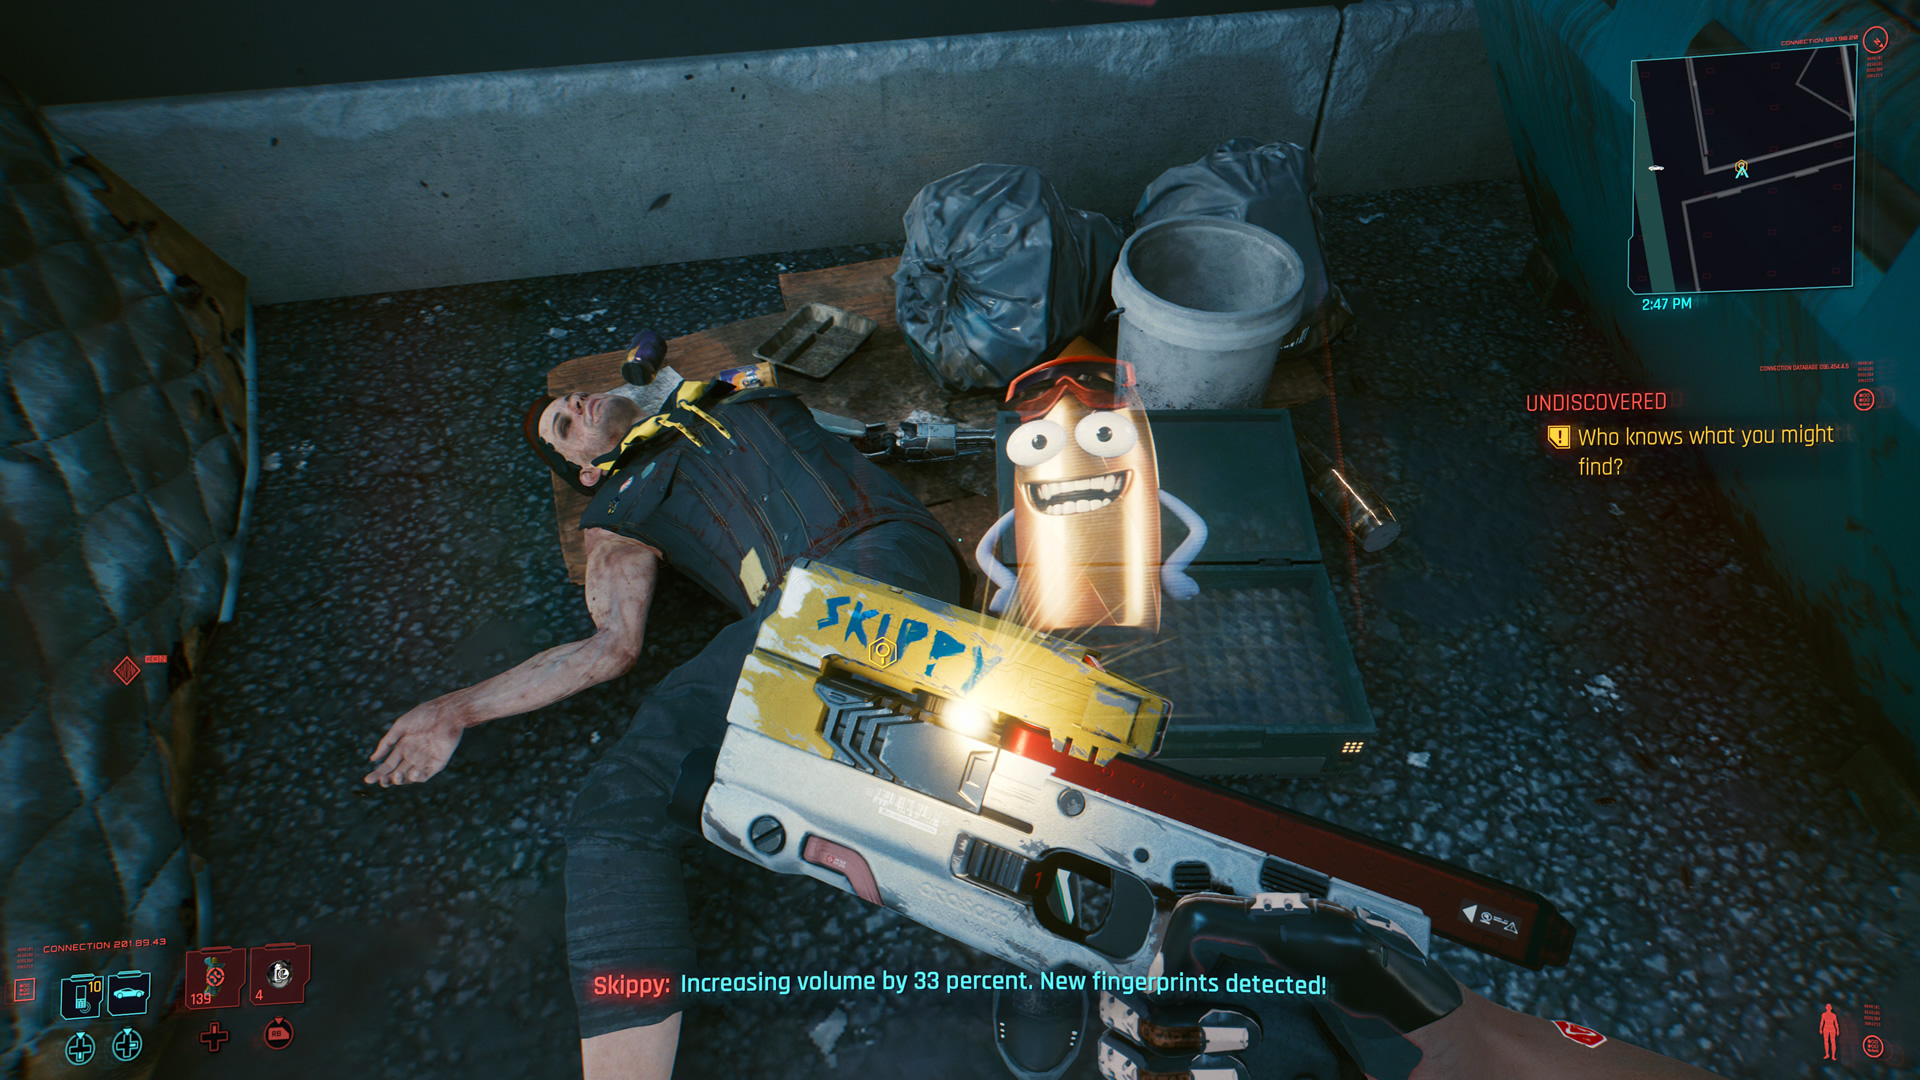 Cyberpunk 2077 apologizes for poor performance, offers refunds